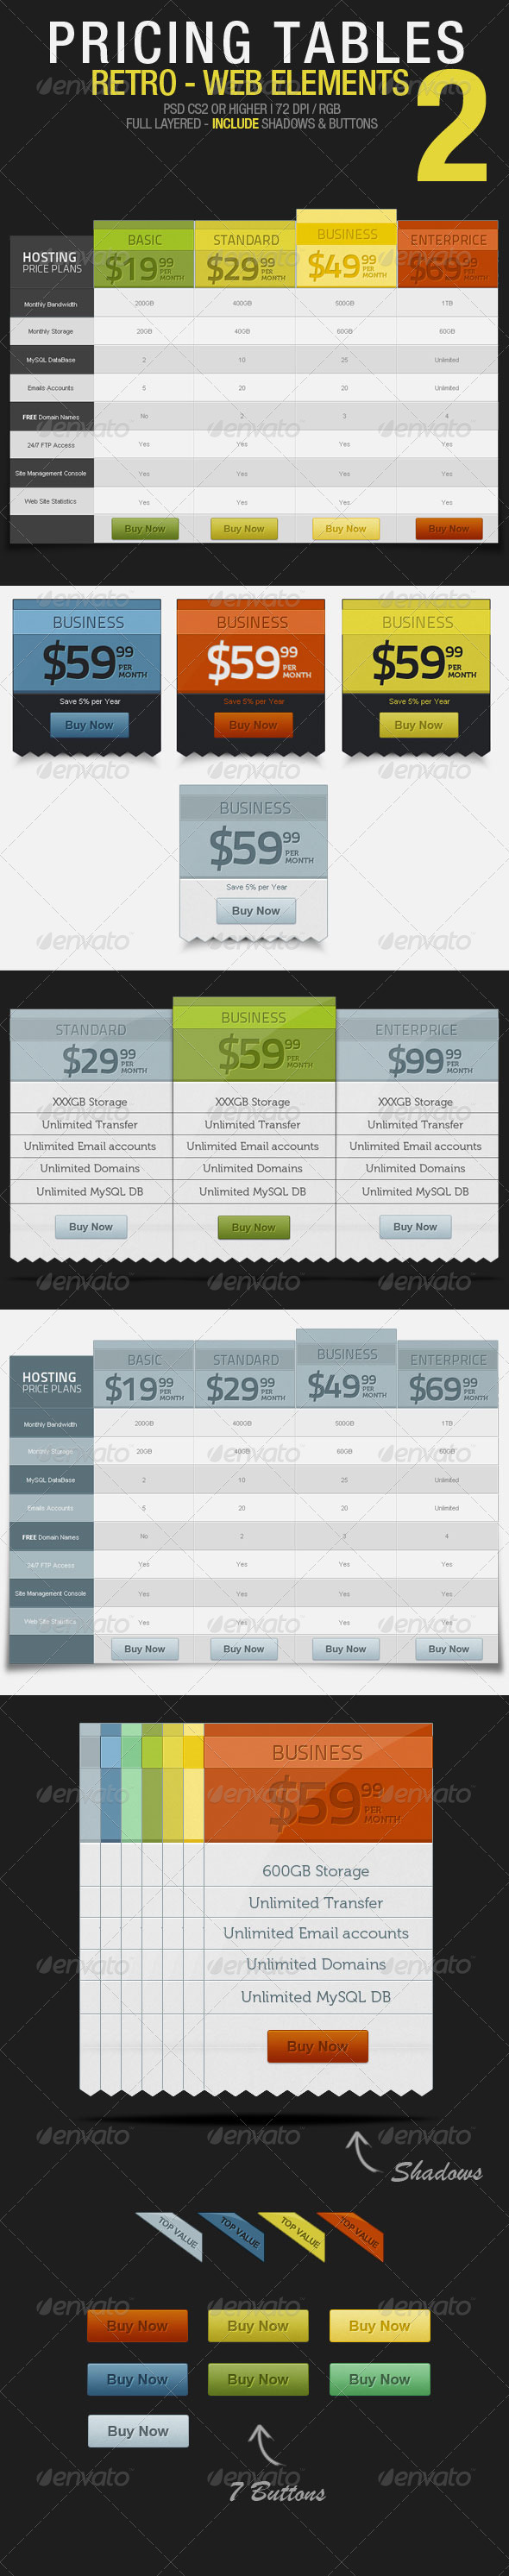 Pricing Tables 02 – Retro - Tables Web Elements